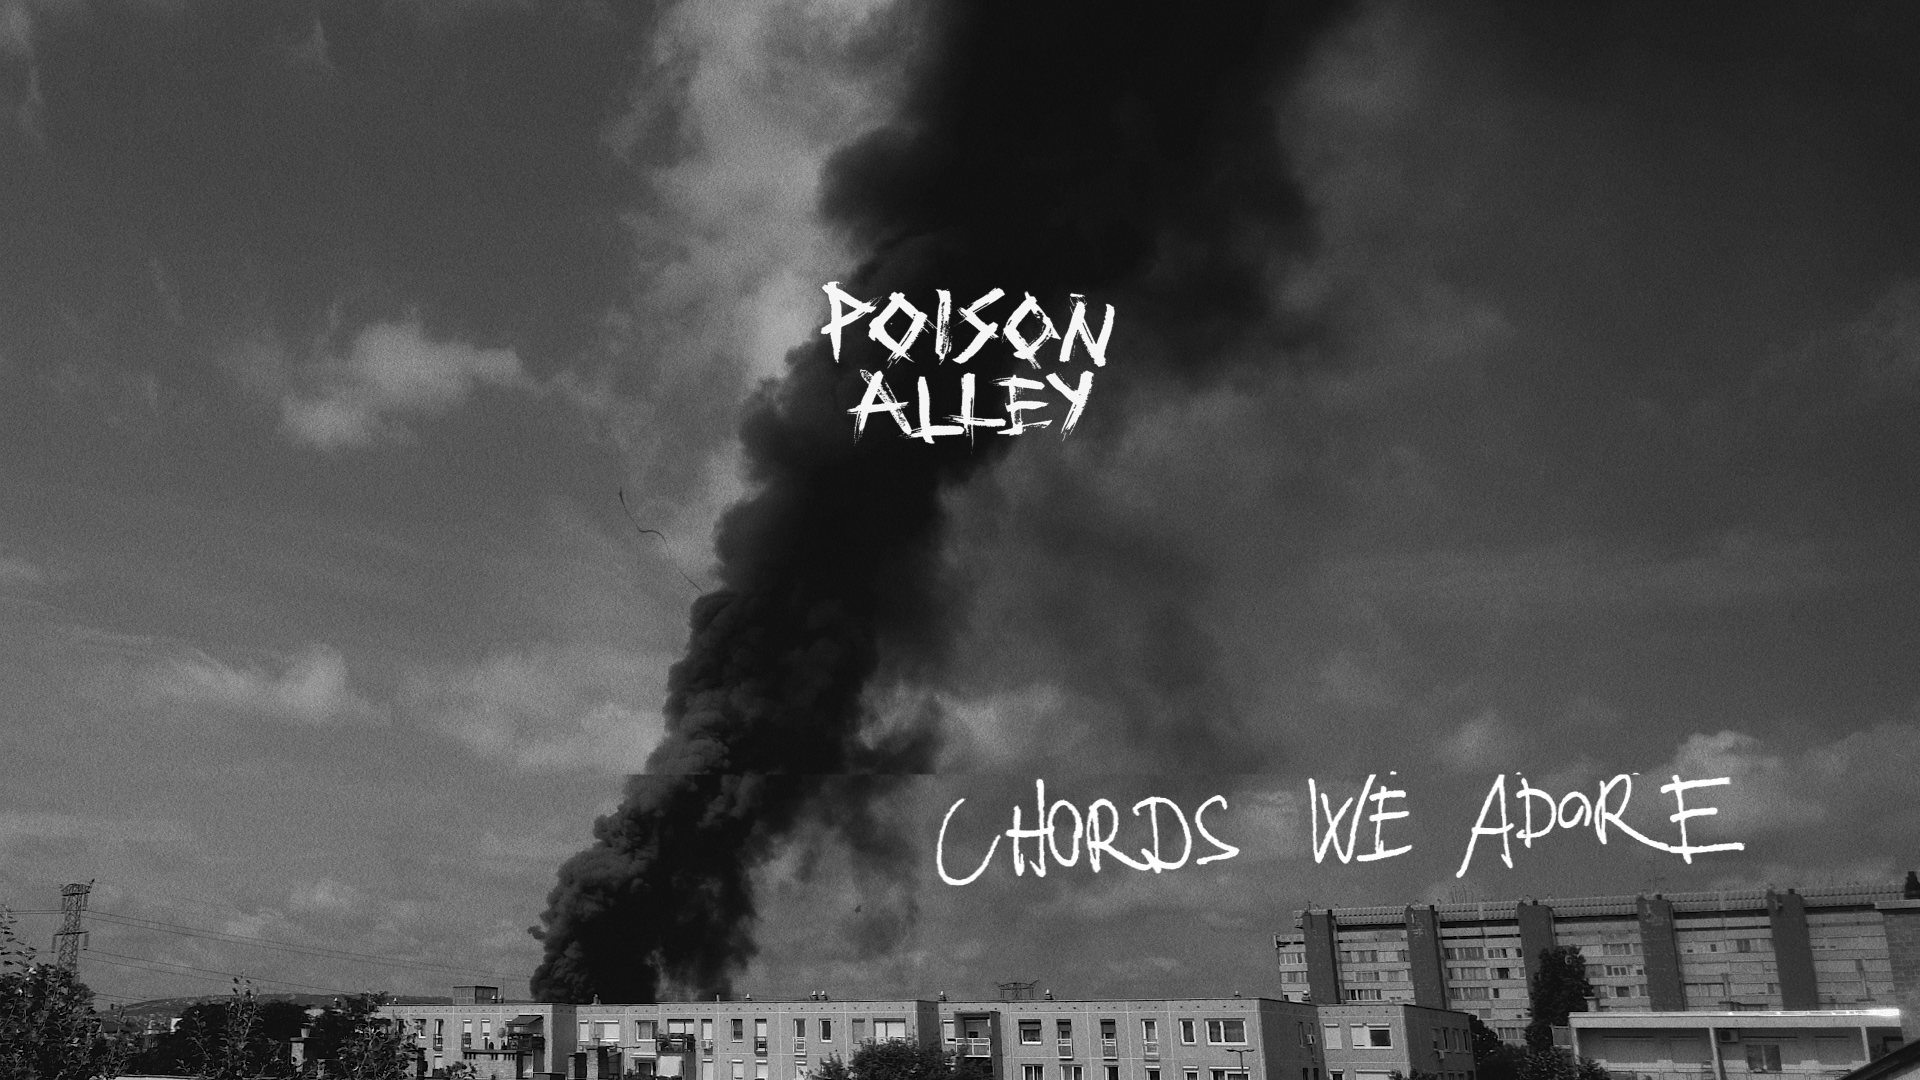 Poison Alley – Chords We Adore – Music video |2017-2020|